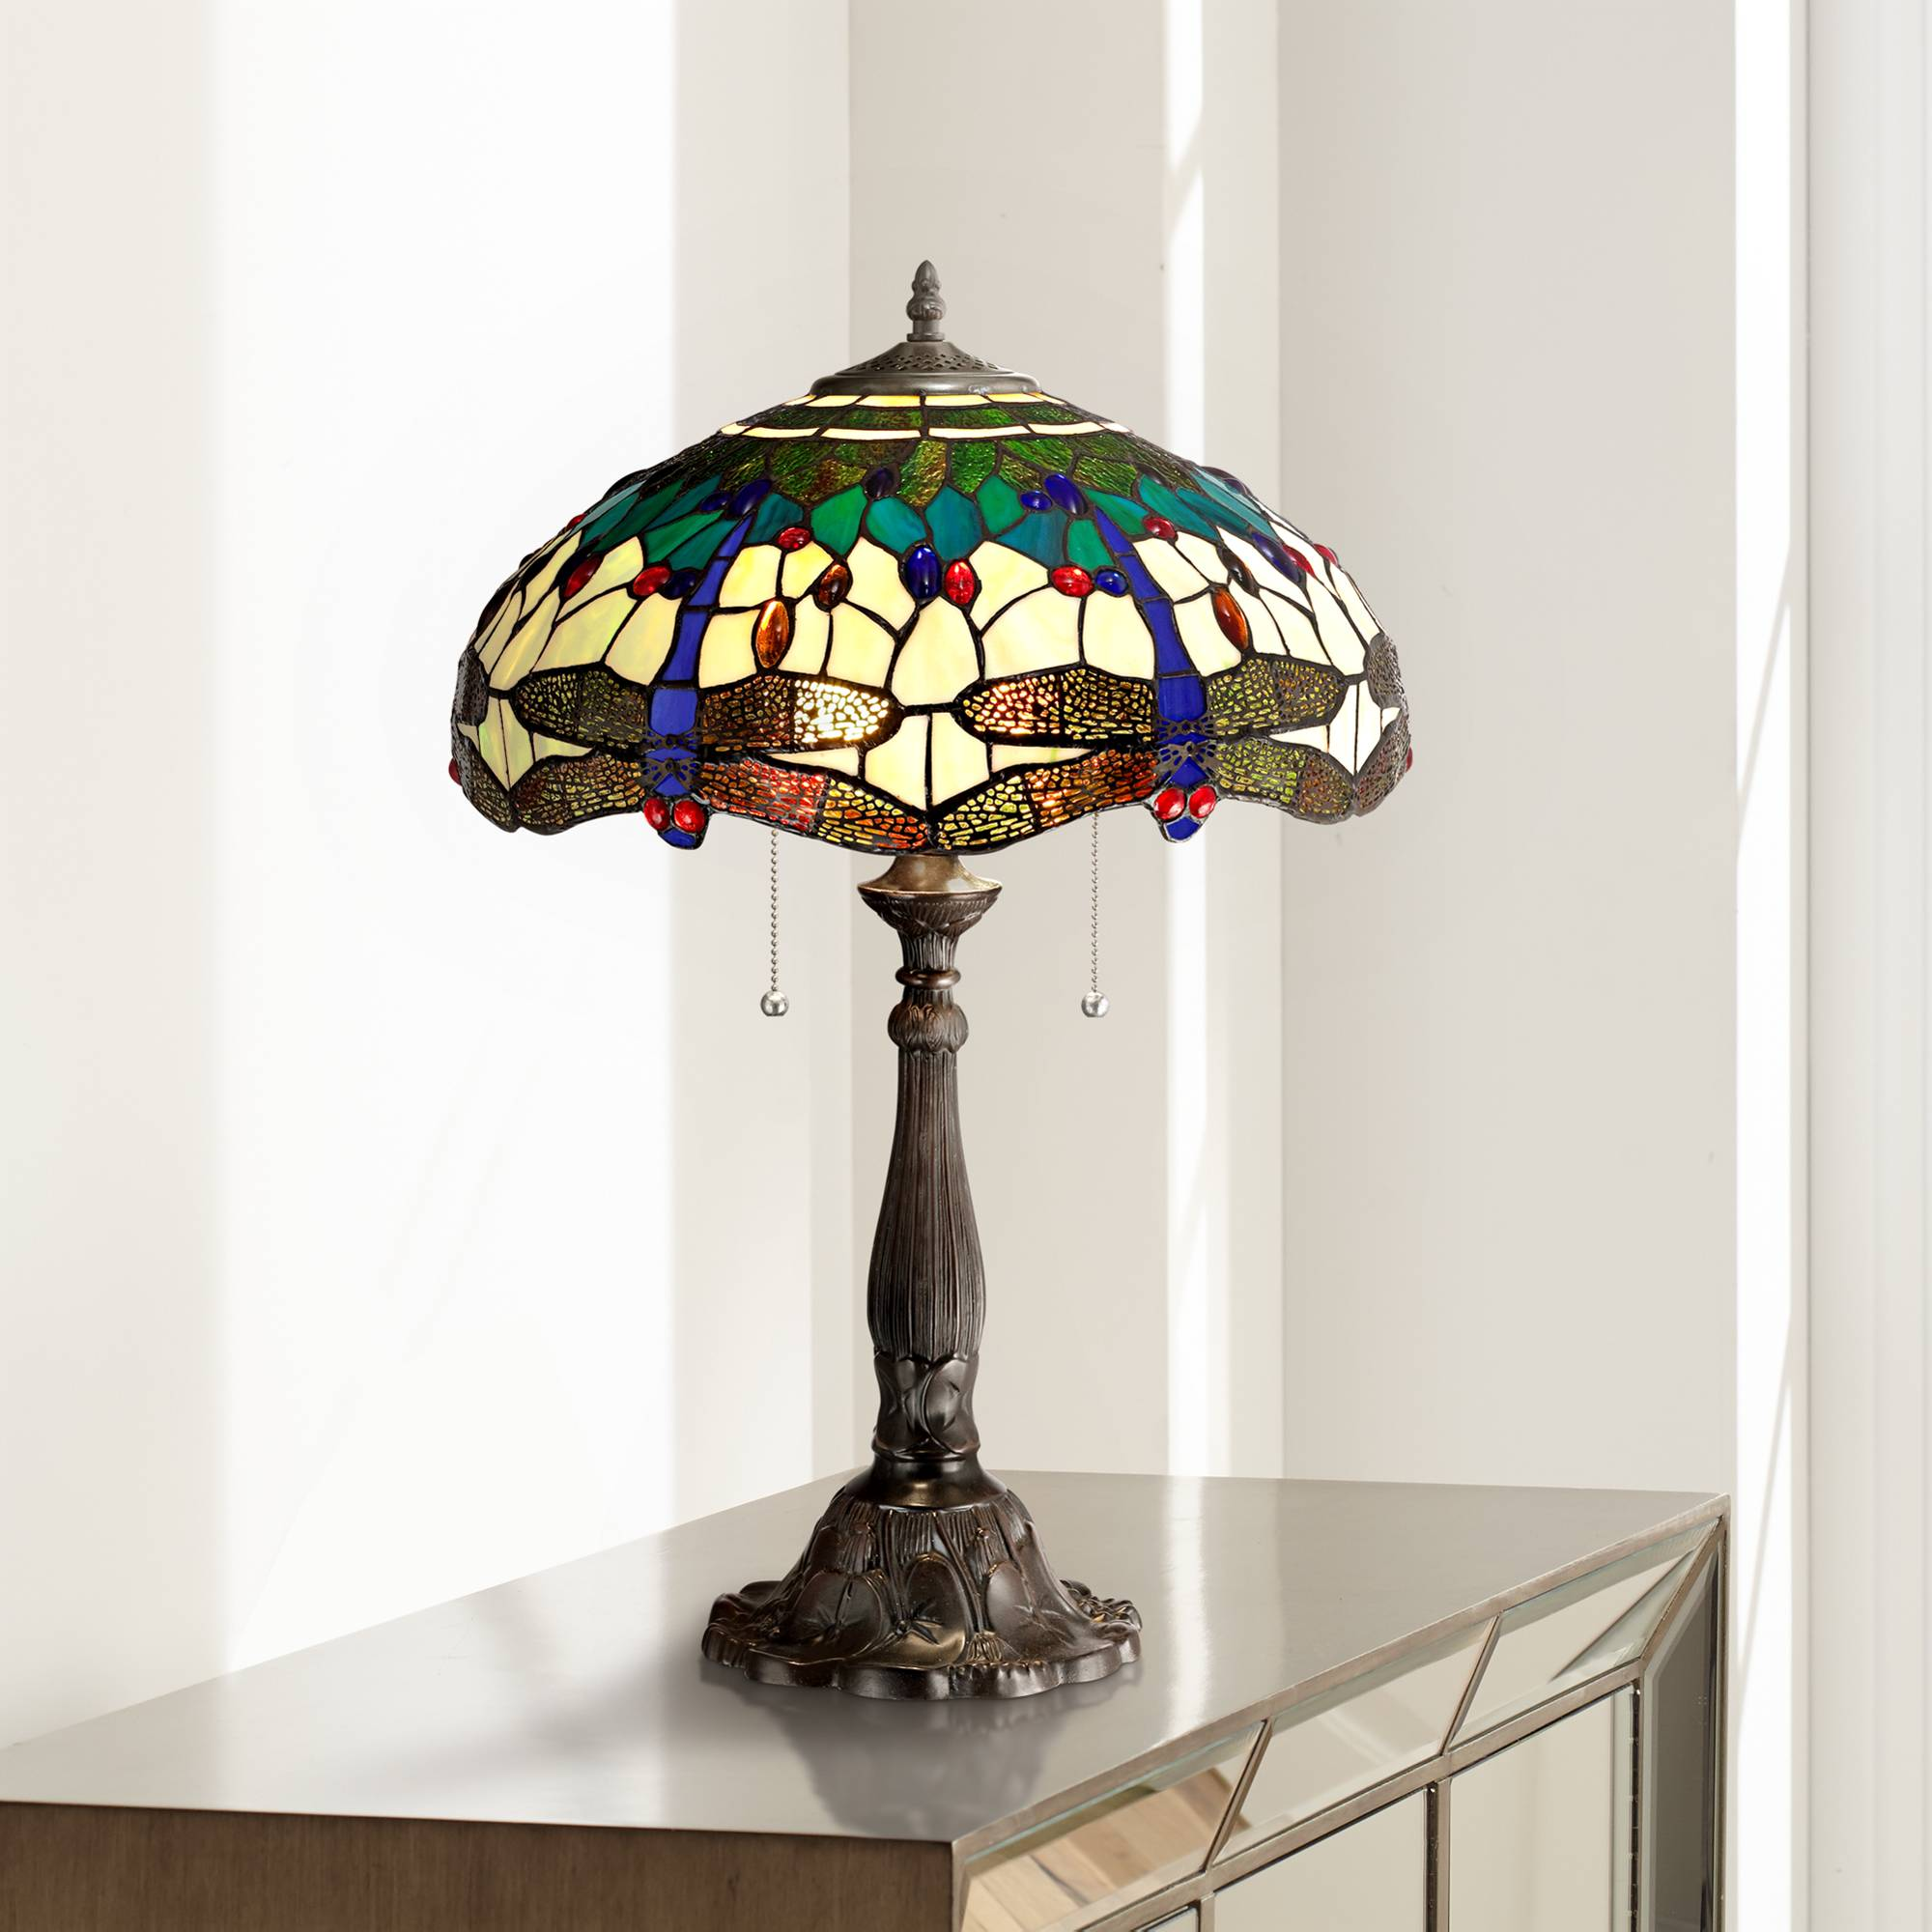 Details About Tiffany Style Table Lamp Bronze Dragonfly Art Gl For Living Room Bedroom